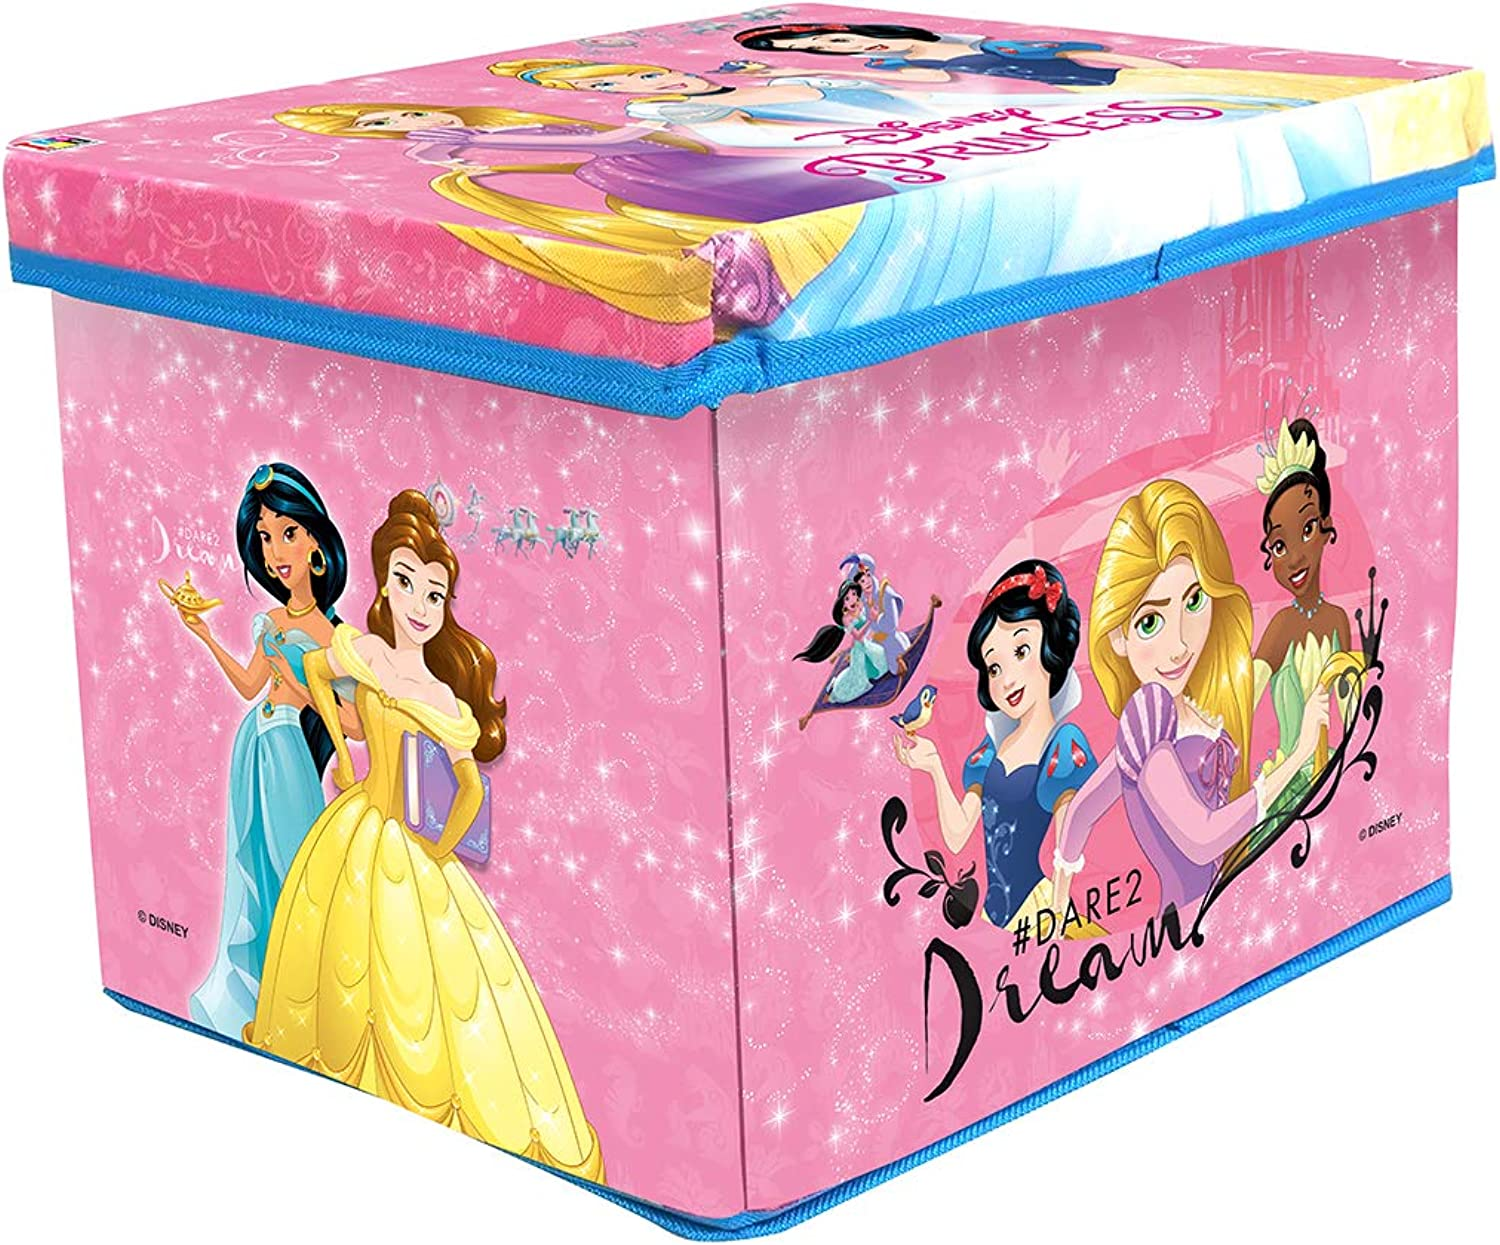 Disney Princess Toy Storage Box for Kids organizing Box & Sitting Stool for Kids Multipurpose use Premium Quality Multicolor Toy Box (color May Vary from Illustration)